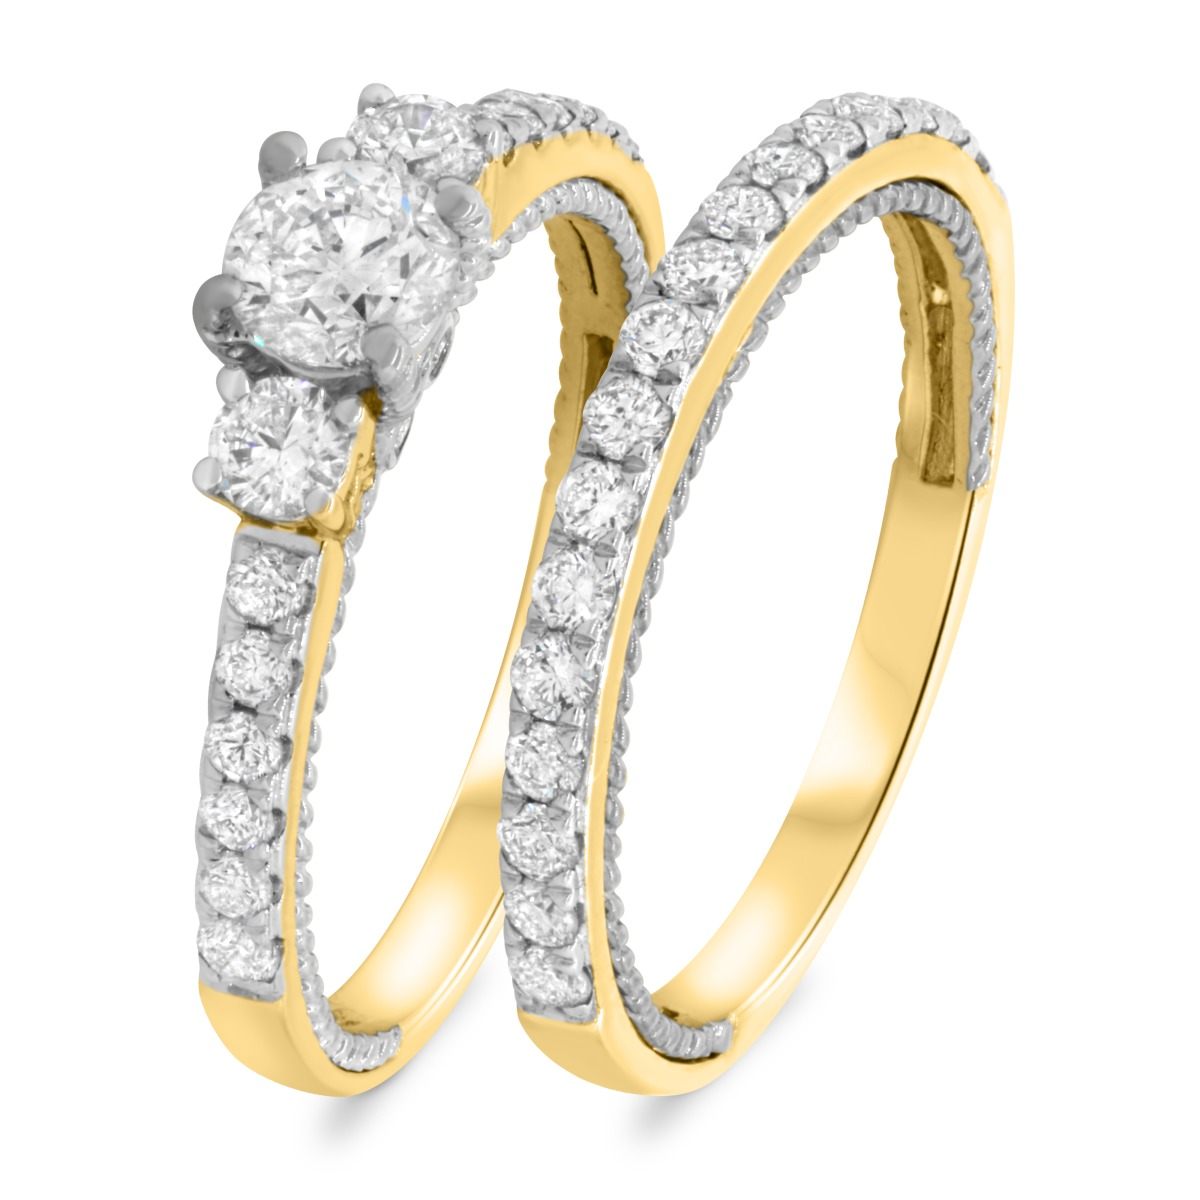 1 1/6 CT. T.W. Diamond Matching Bridal Ring Set 10K Yellow Gold